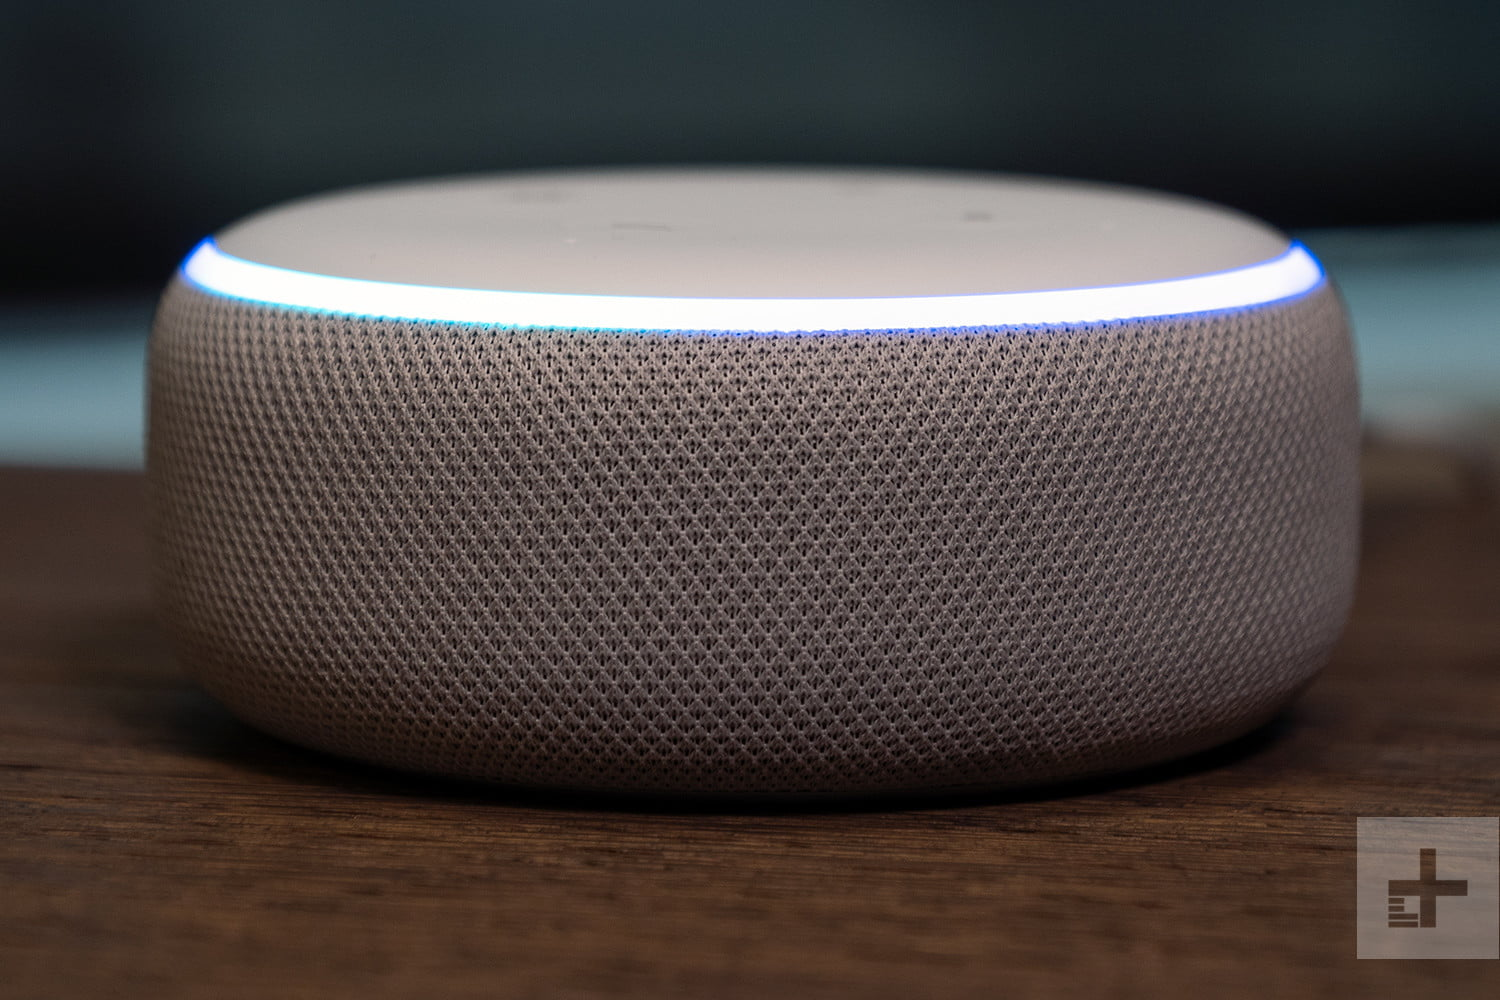 How to Change Alexa's Voice to a Different Language or Accent